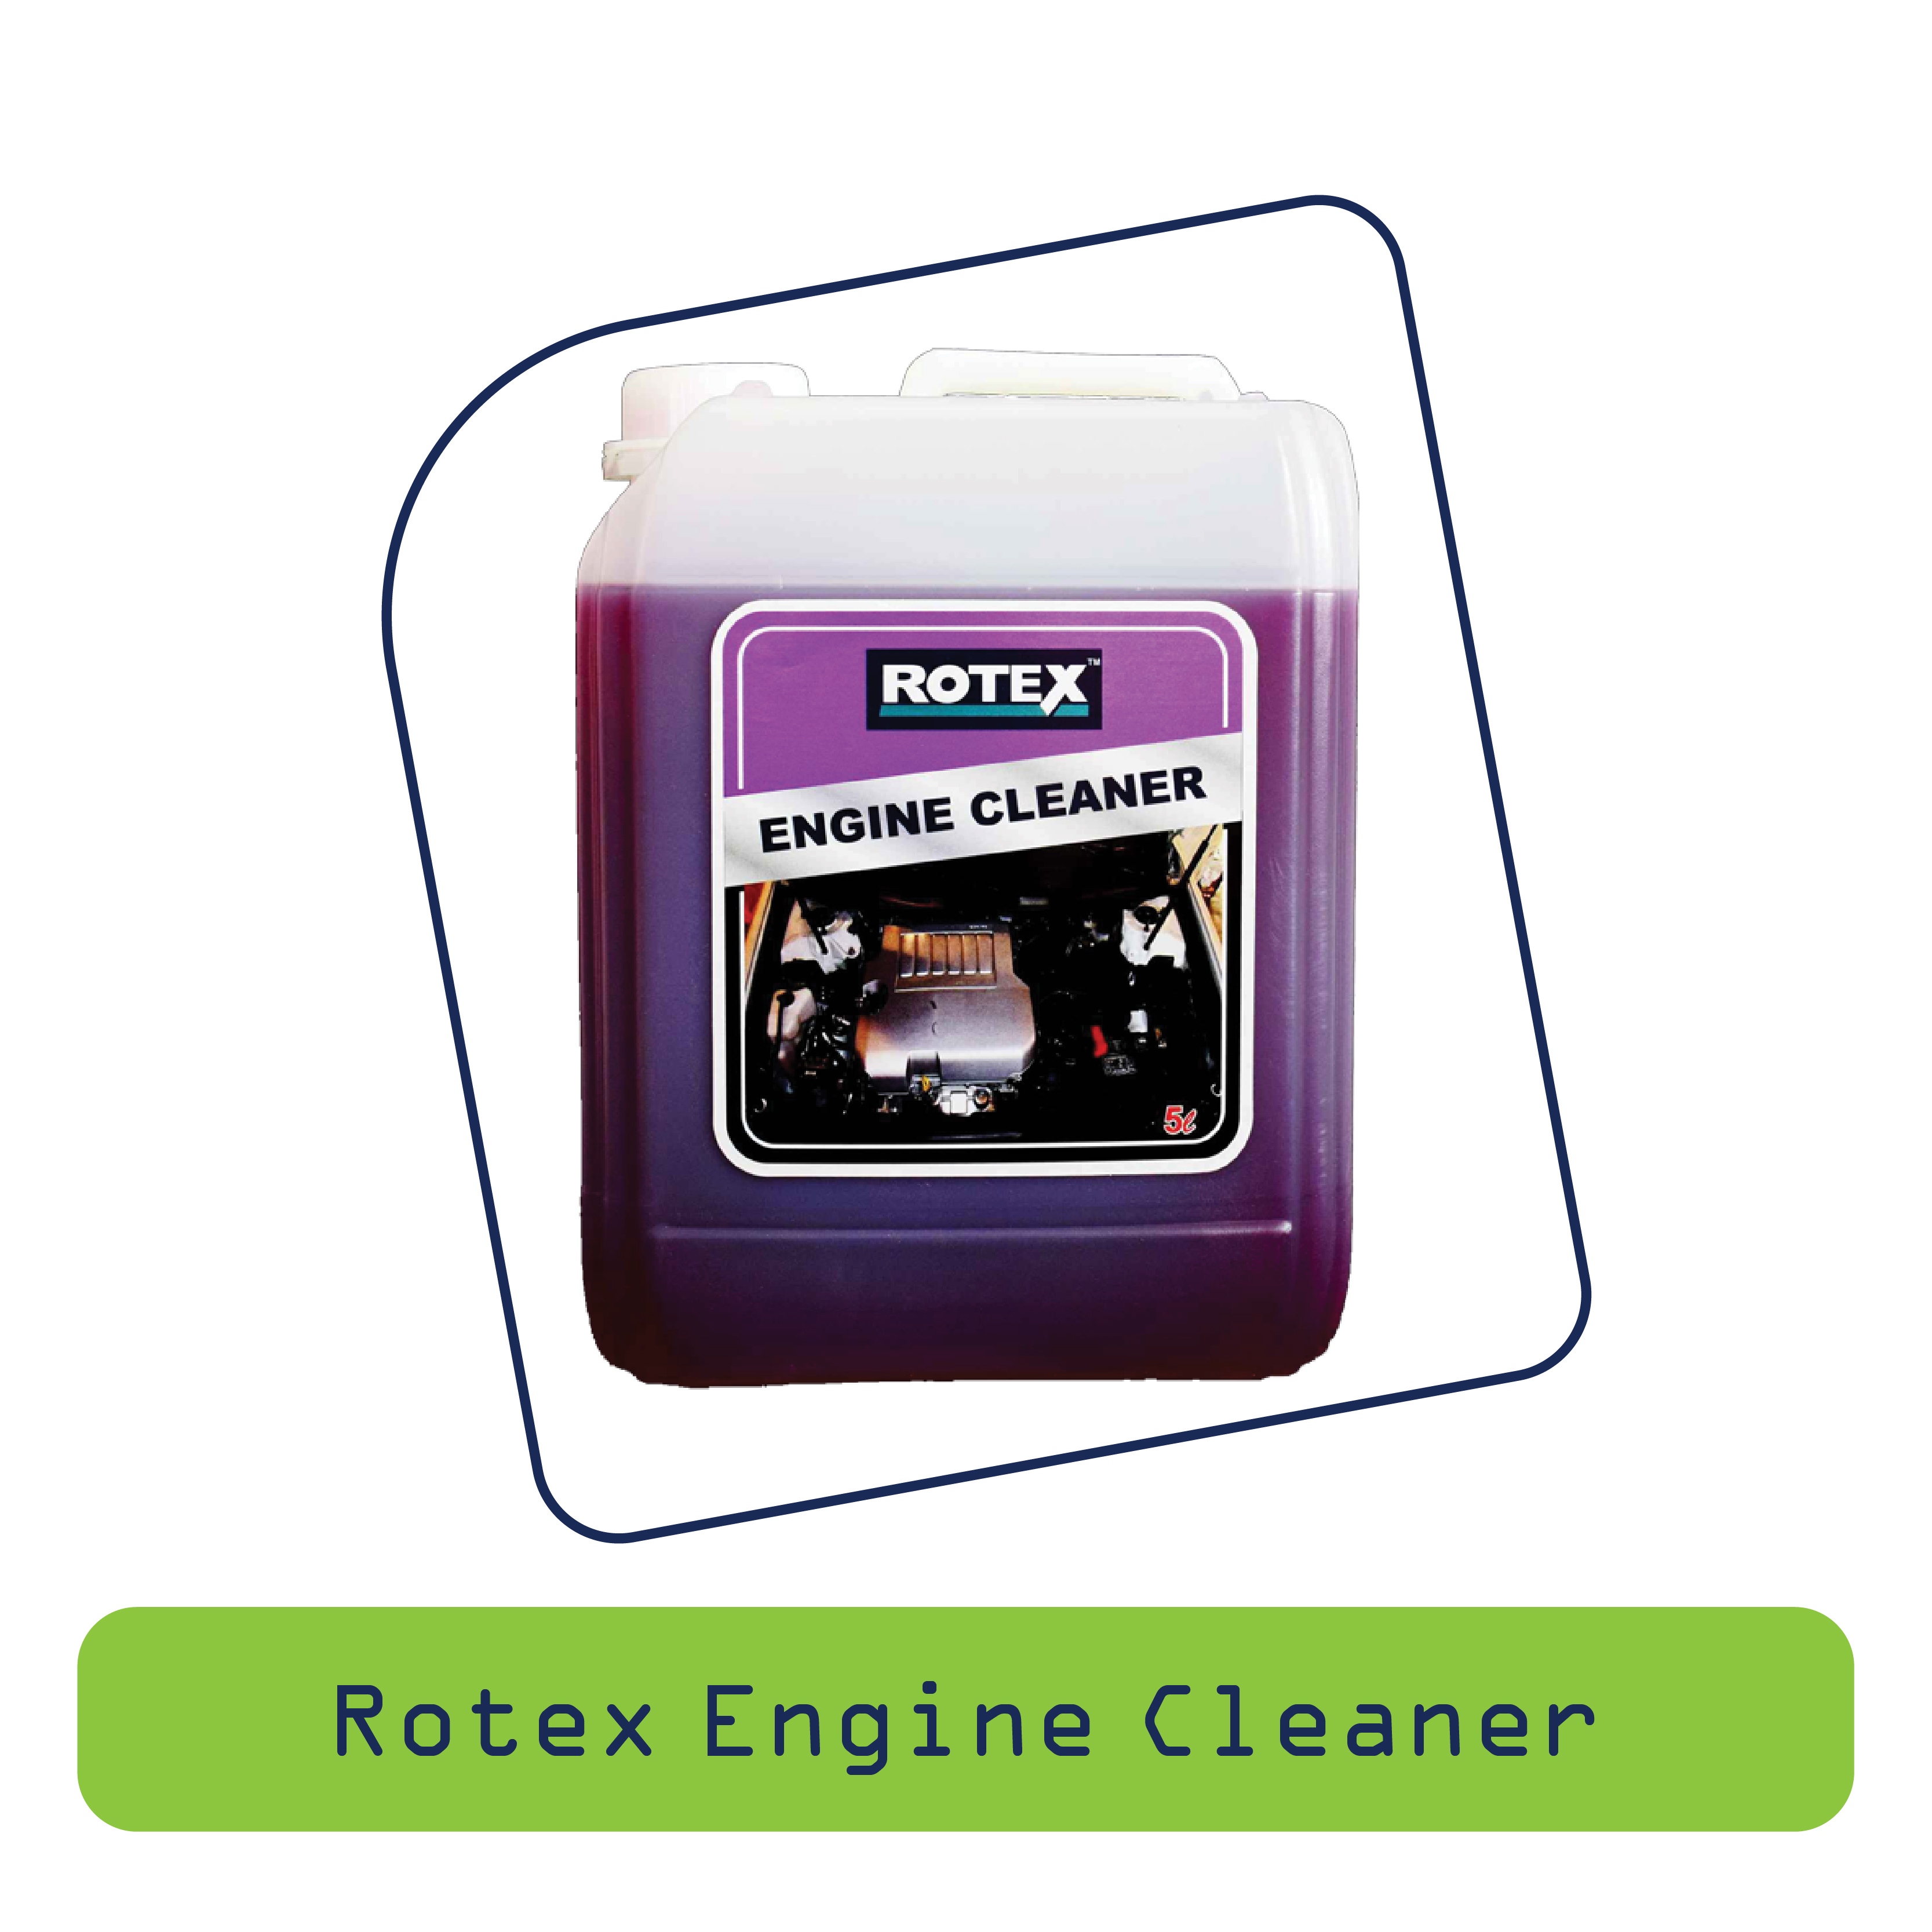 Rotex Engine Cleaner